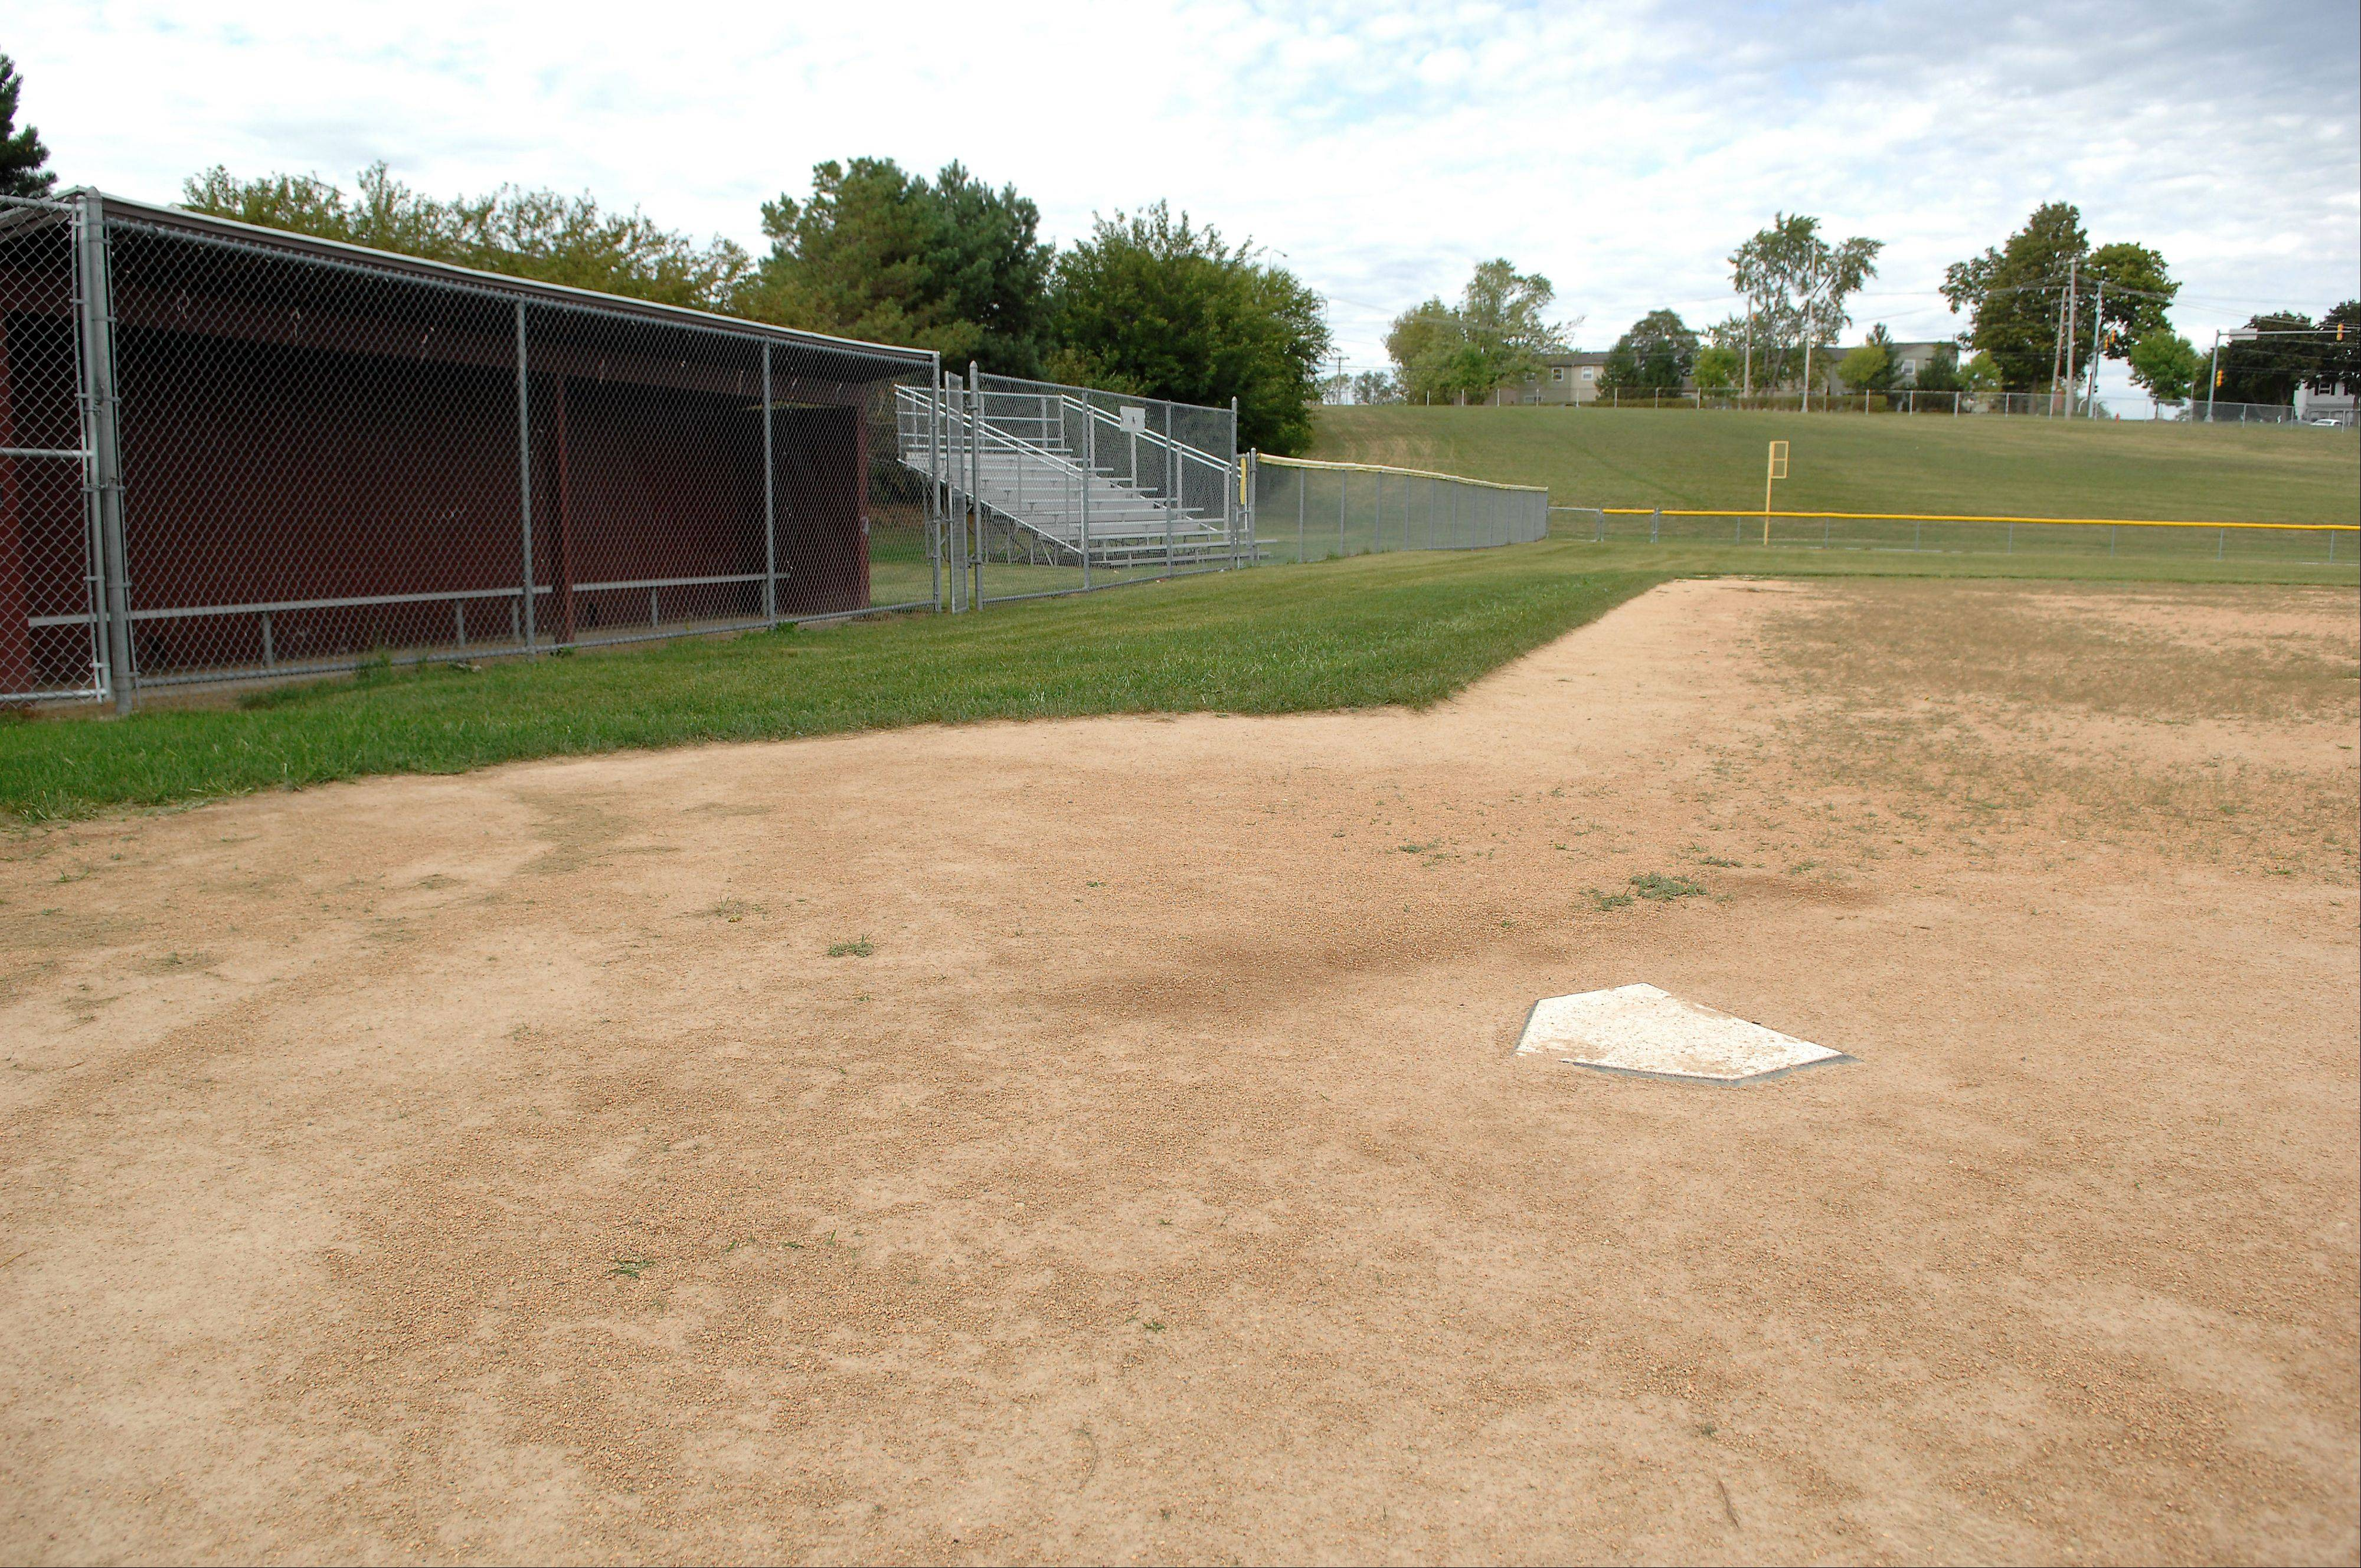 The Elgin High School softball field has dugouts and fences as a result of a Title IX lawsuit filed in 2001.